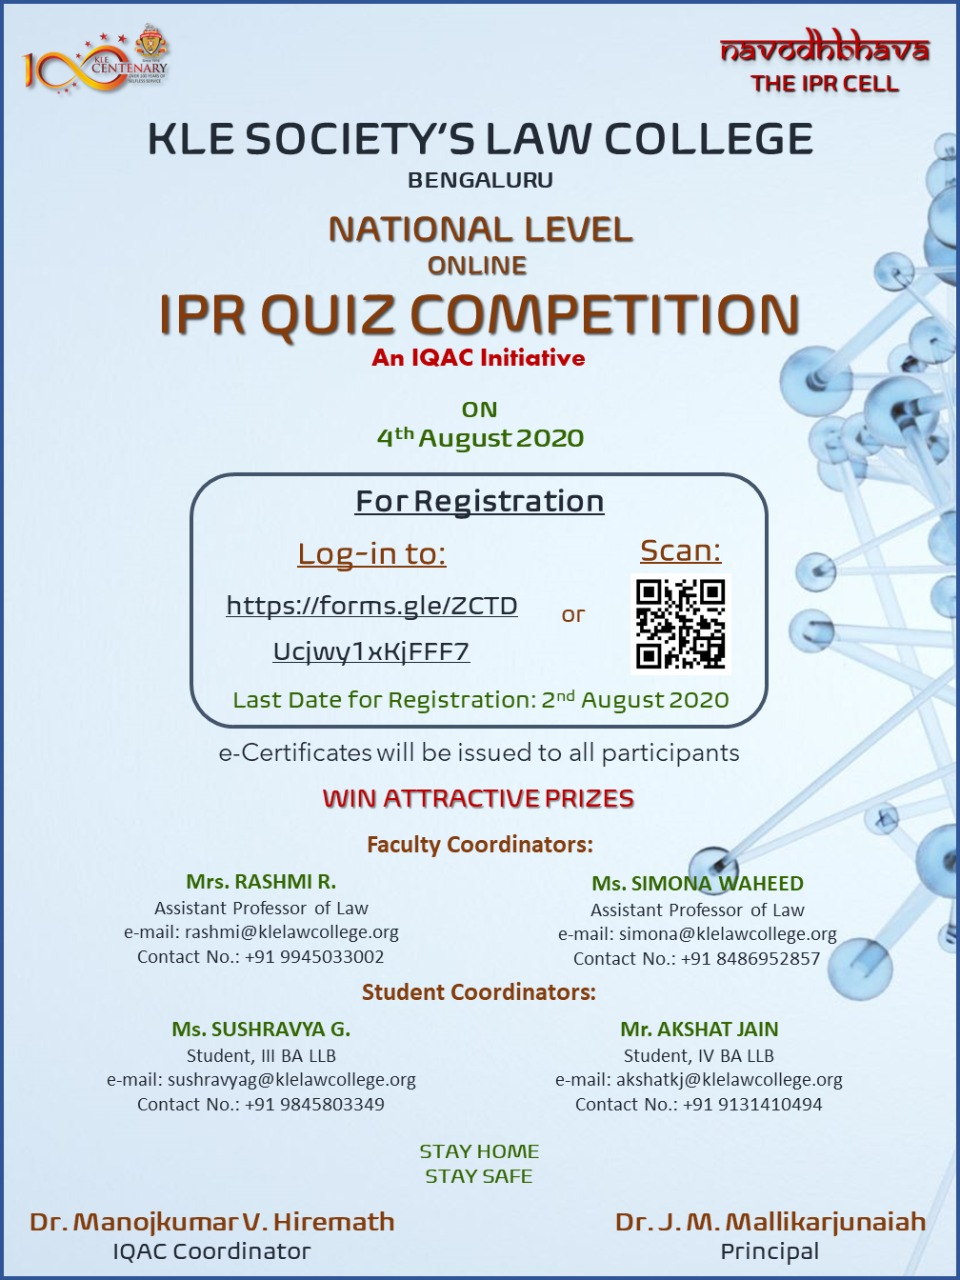 National Online Quiz Competition by KLE Society's Law College